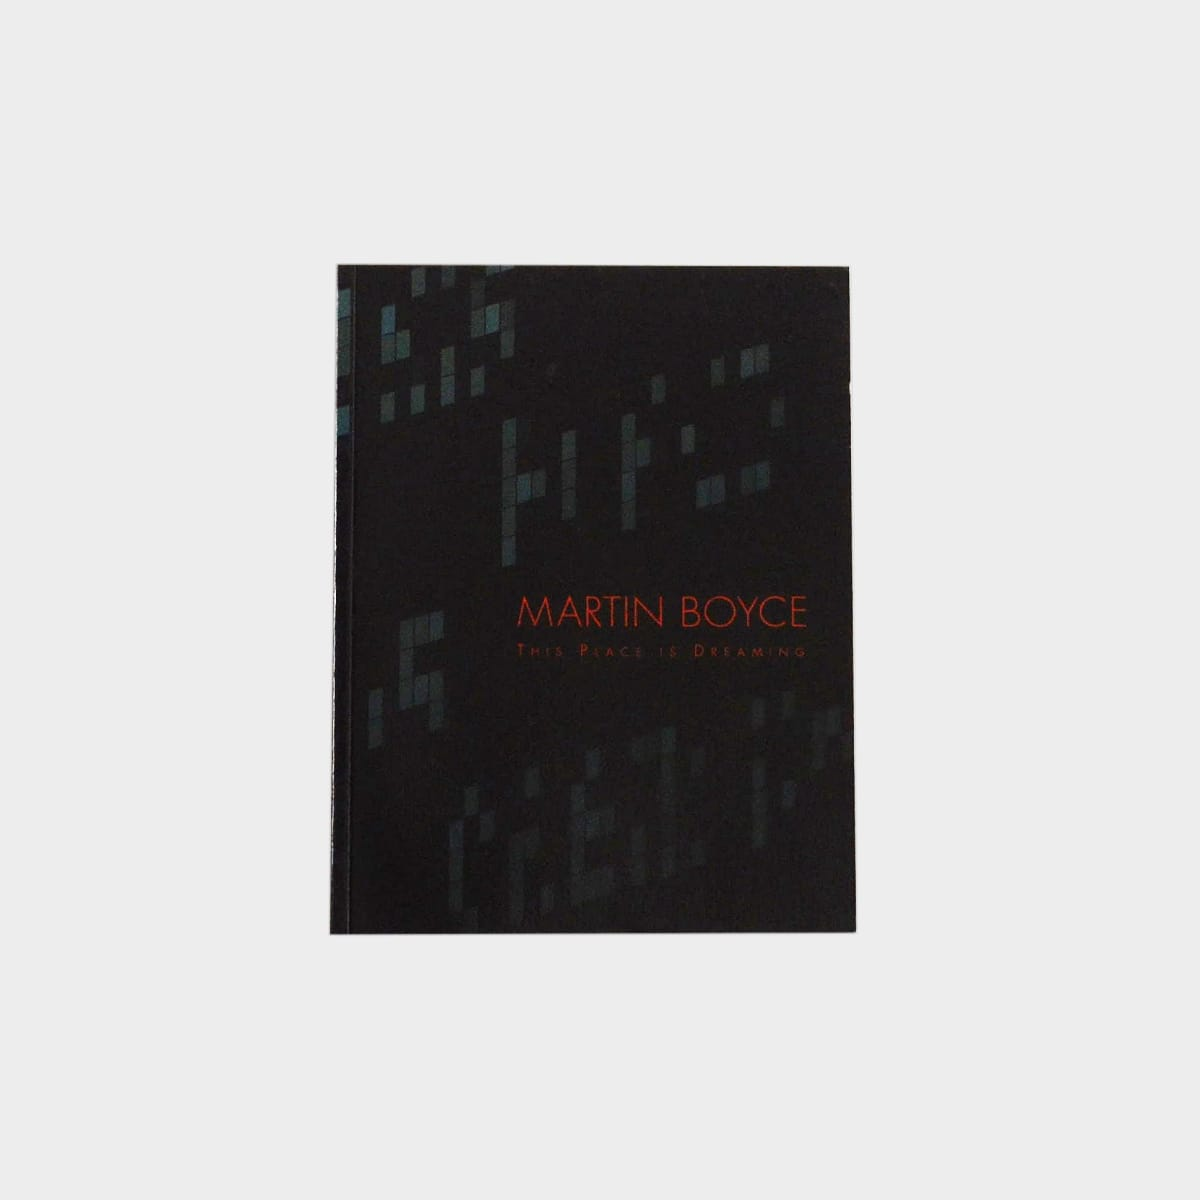 "Martin Boyce exhibition catalogue cover. Red text reads ""Martin Boyce: This Place is Dreaming"" on a black background with illegible digital sign letters in a dark blue-gray."